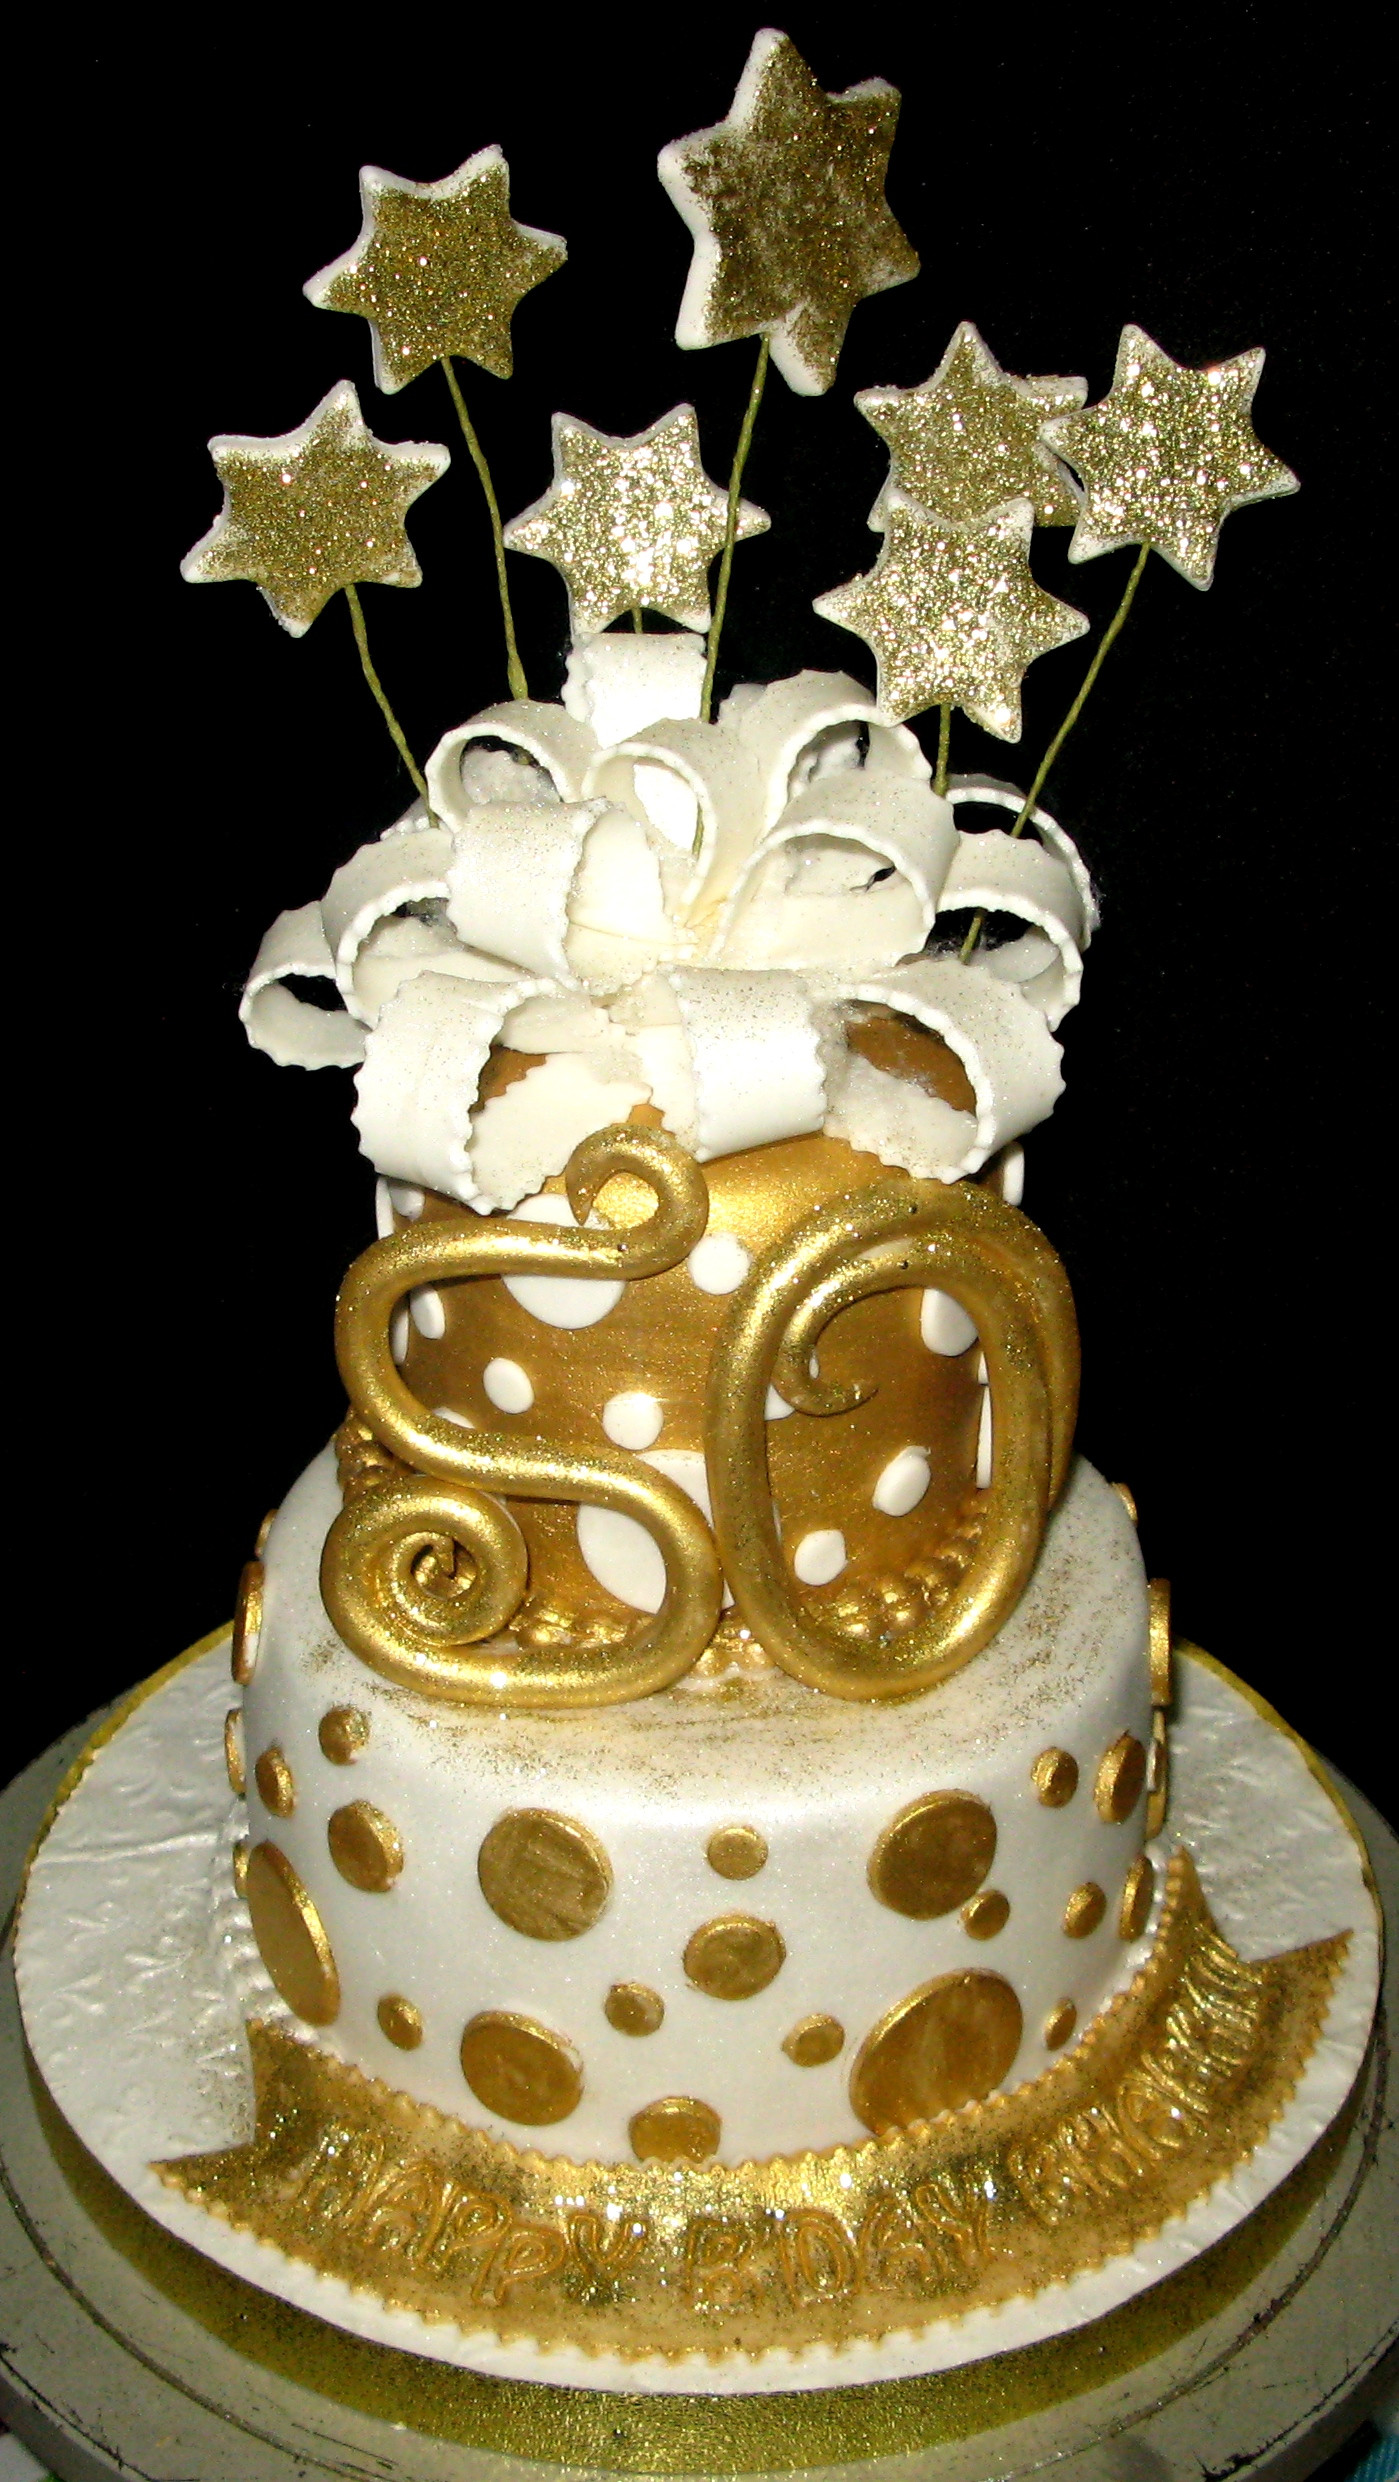 Best ideas about Cake Birthday . Save or Pin birthday cakes Now.